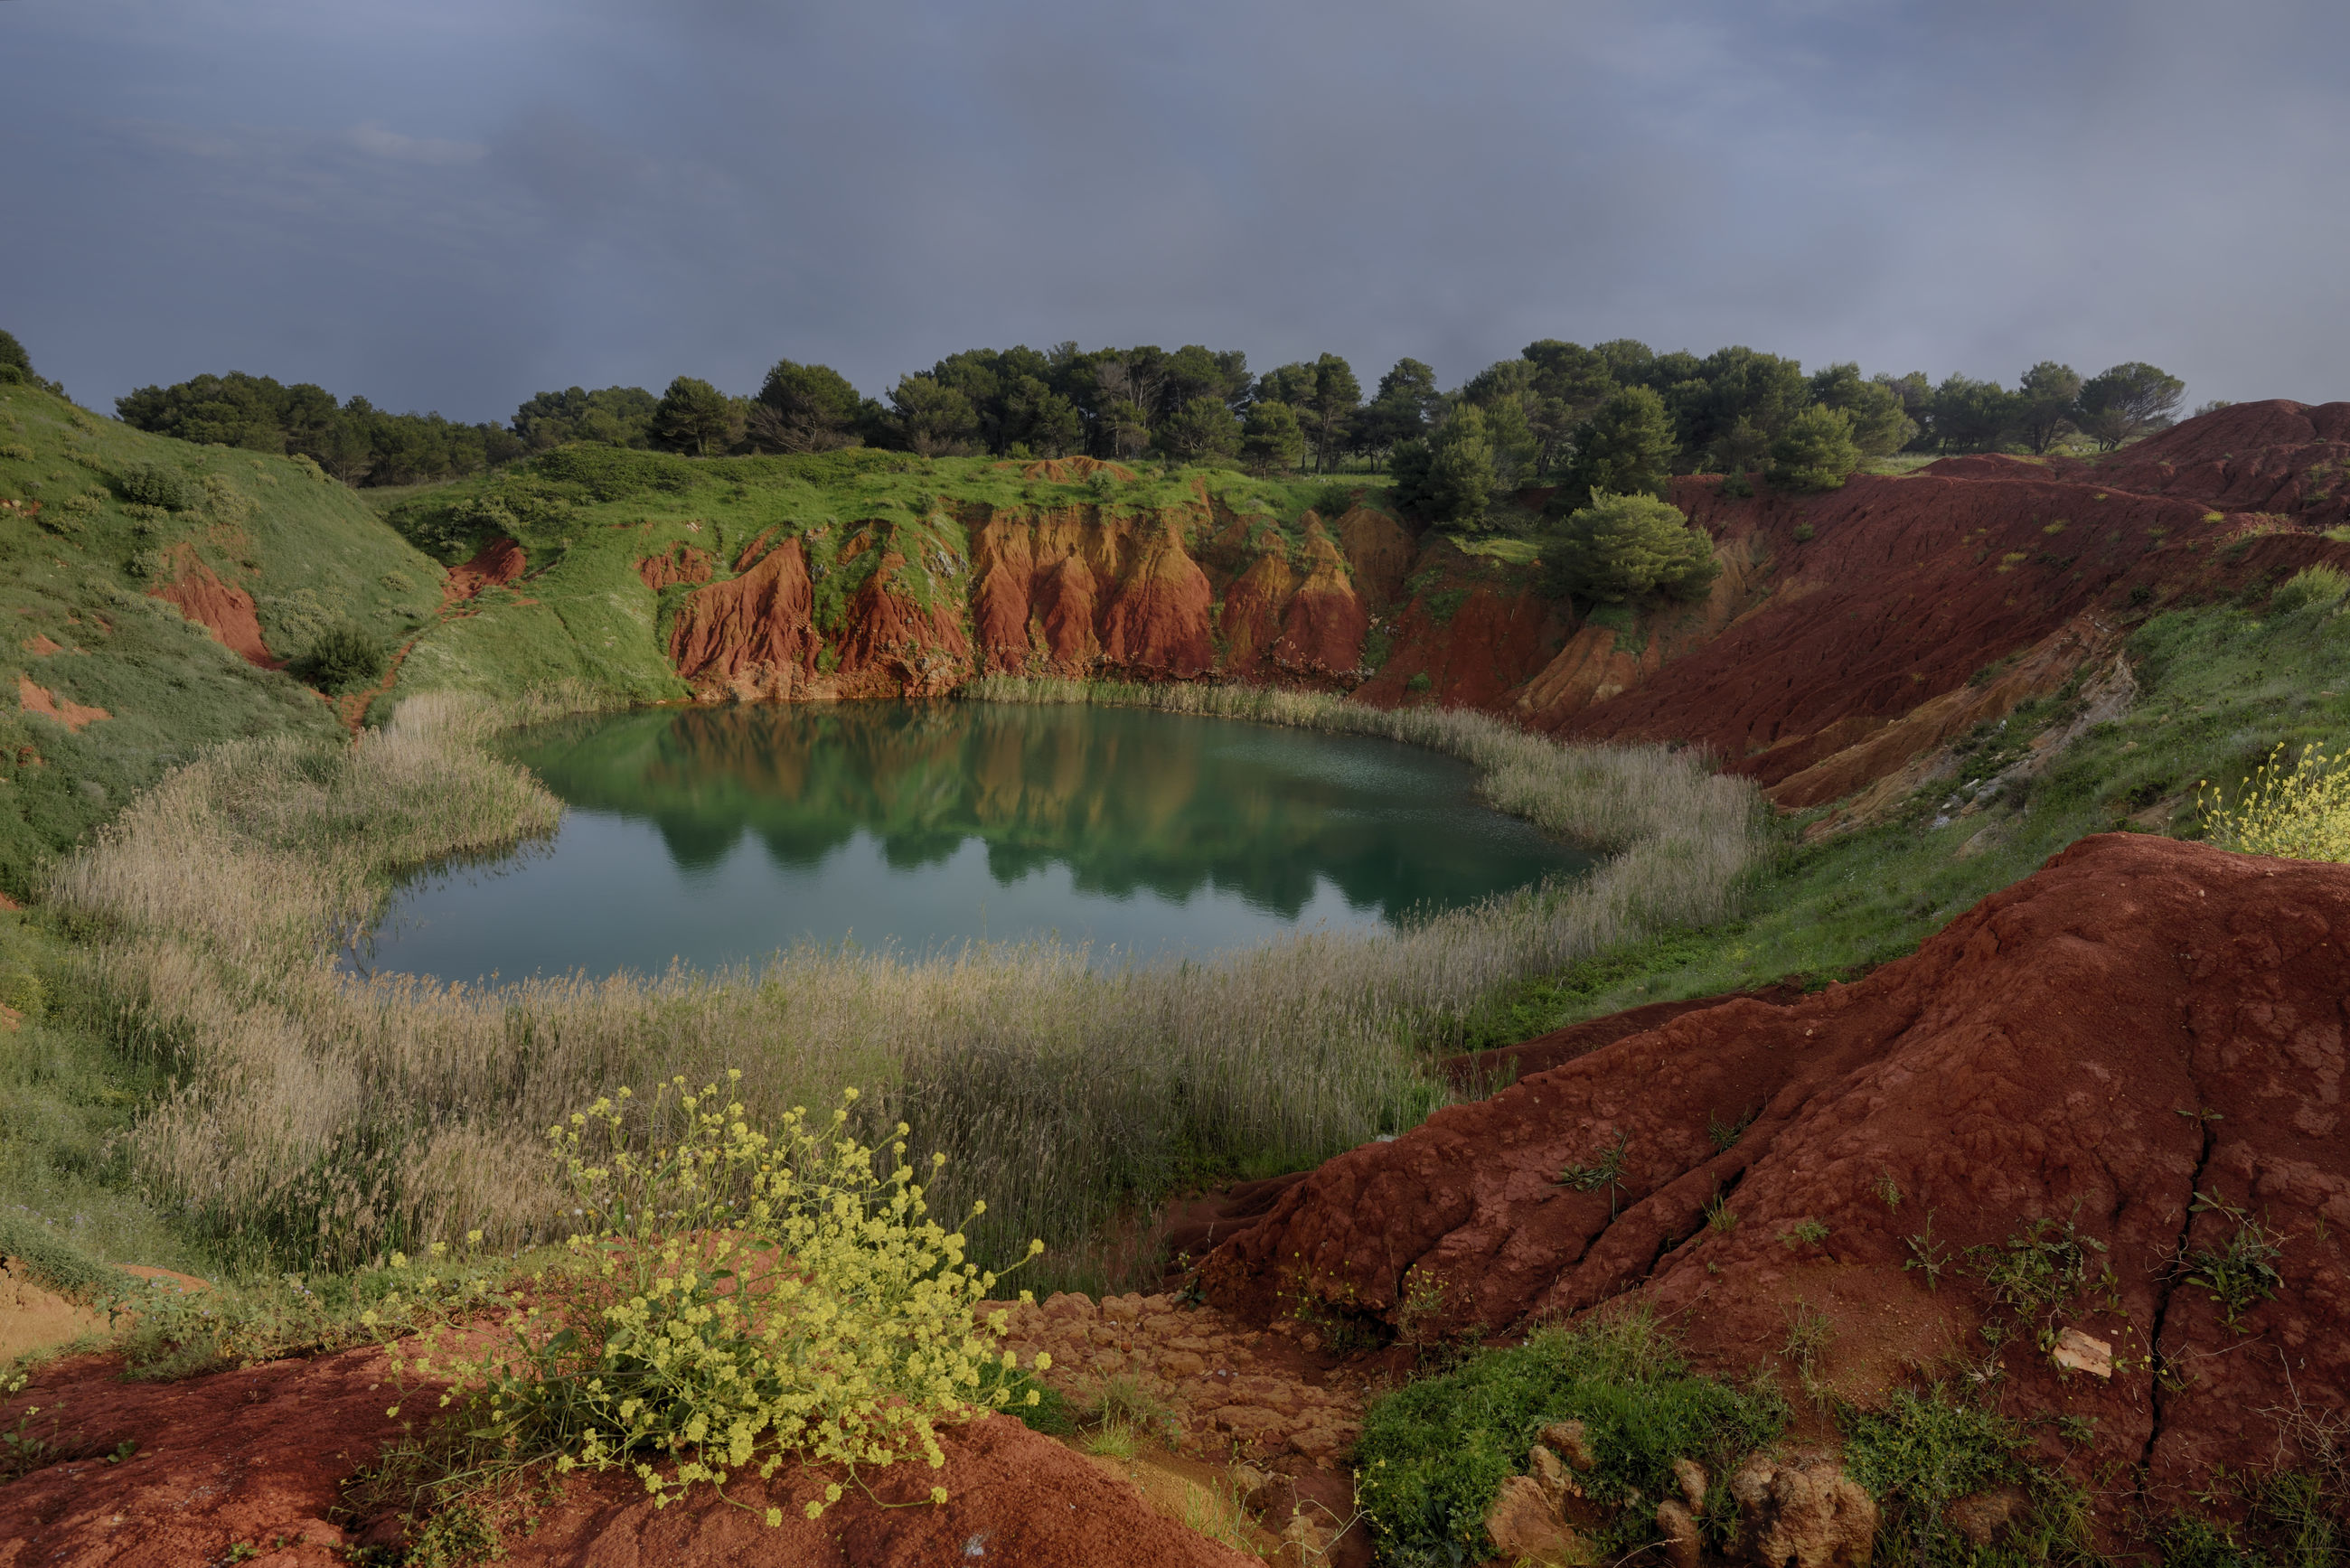 Scenic view of pond against cloudy sky